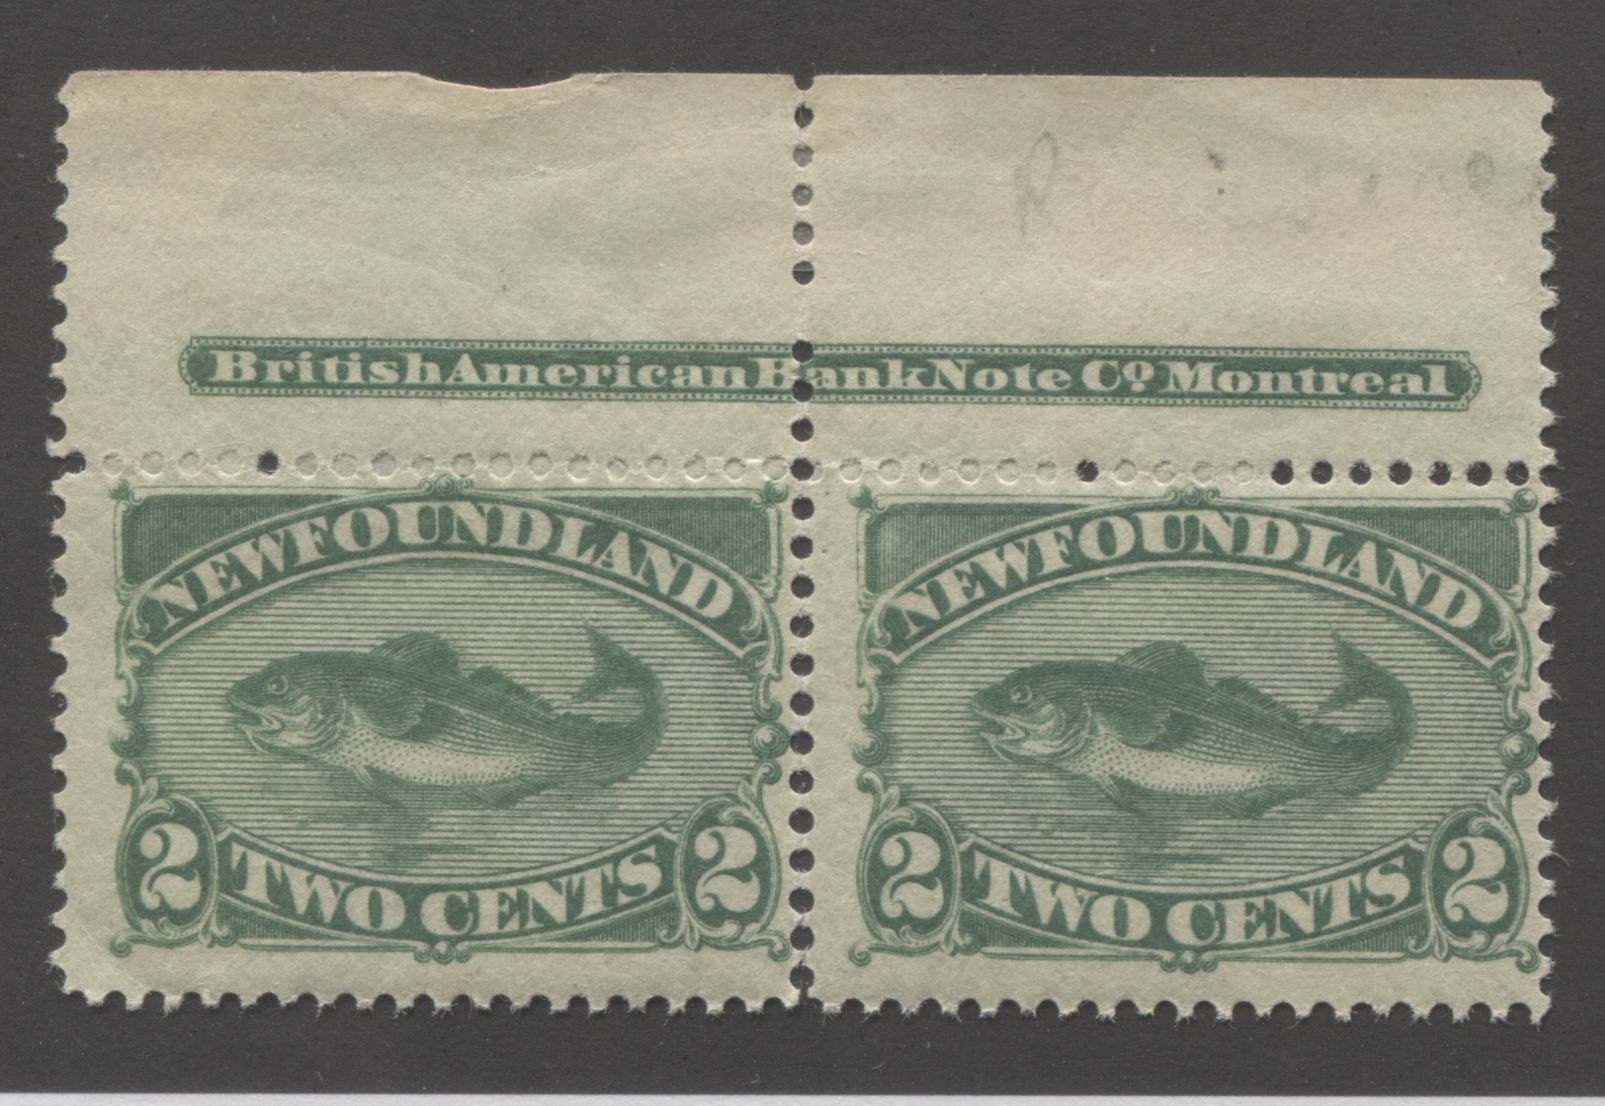 Newfoundland #47 2c Deep Green Codfish, 1880-1896 Third Cents Issue A Fine Mint NH Top Margin Inscription Pair, Perf. 12.25 x 12 Brixton Chrome